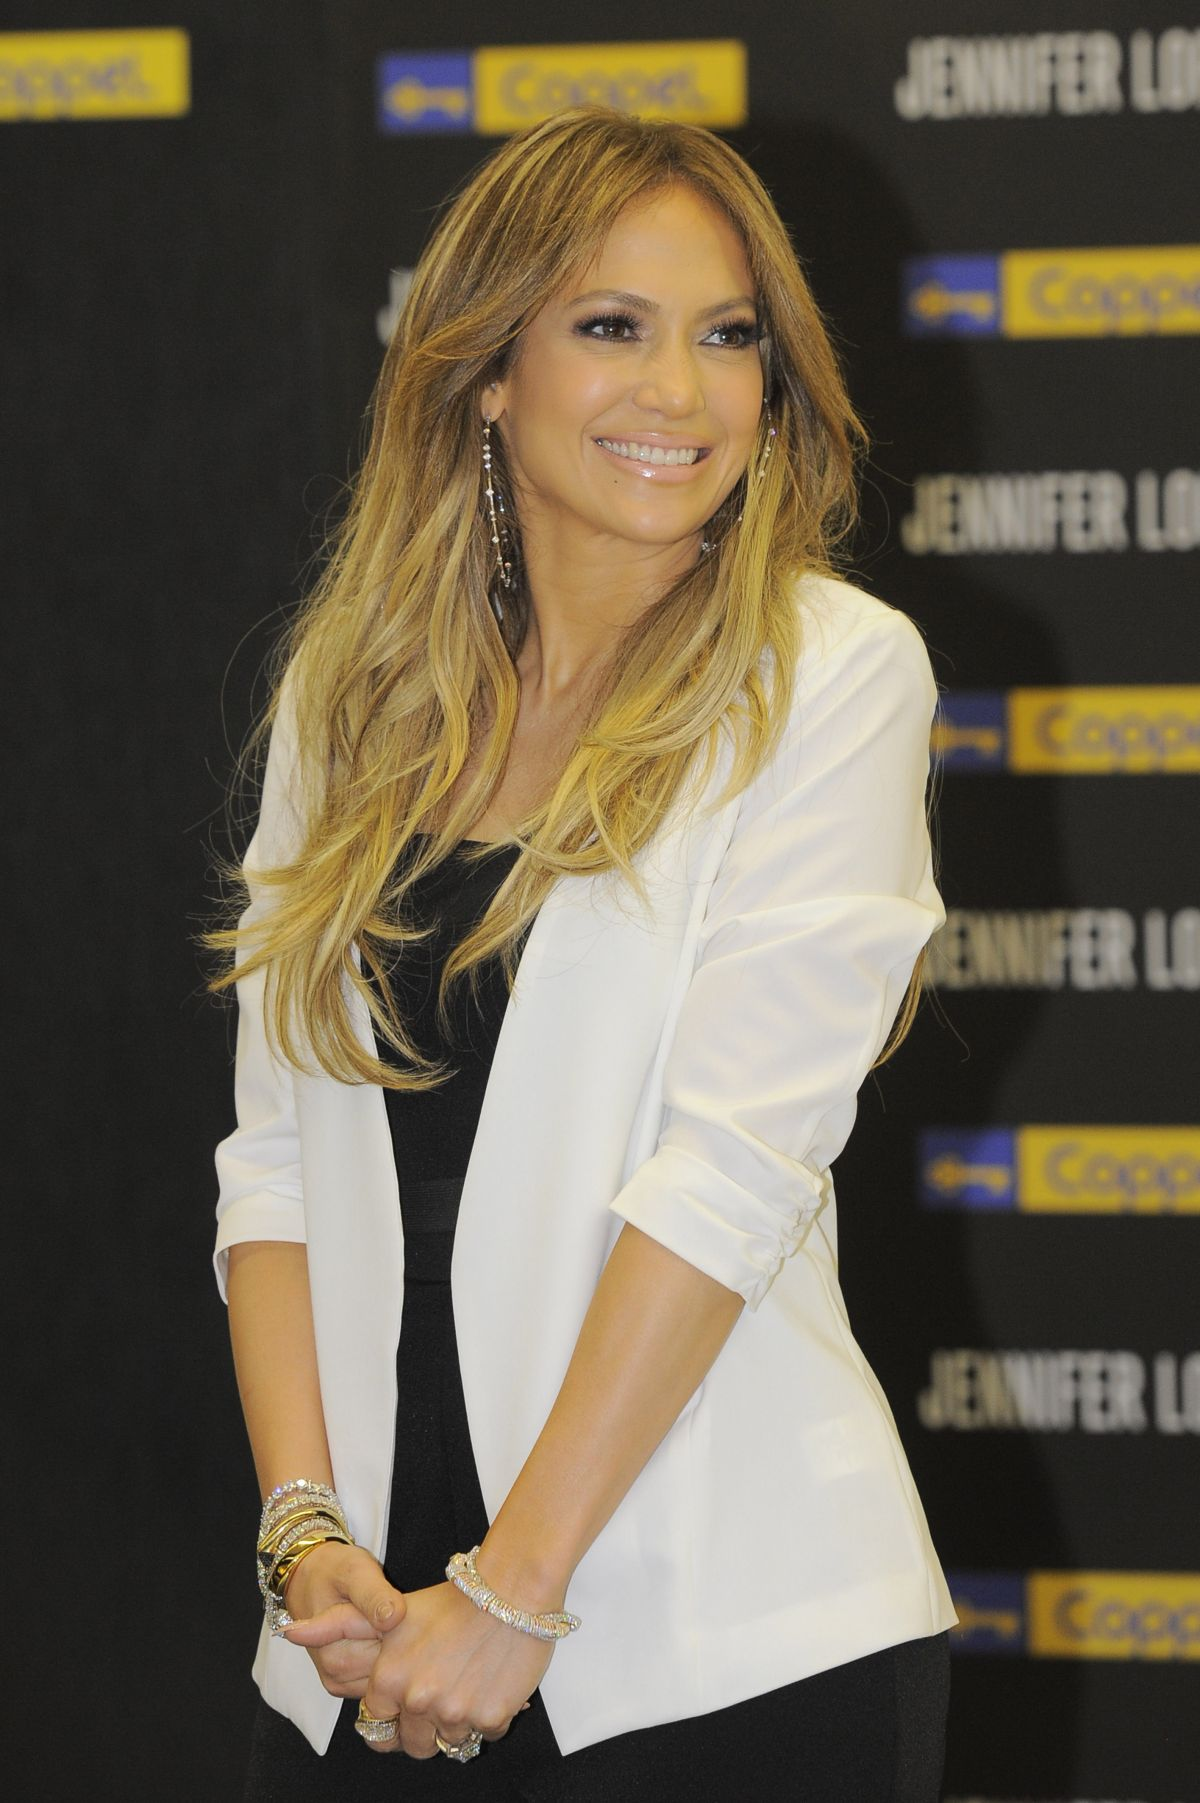 JENNIFER LOPEZ at Coppel Store in Mexico City